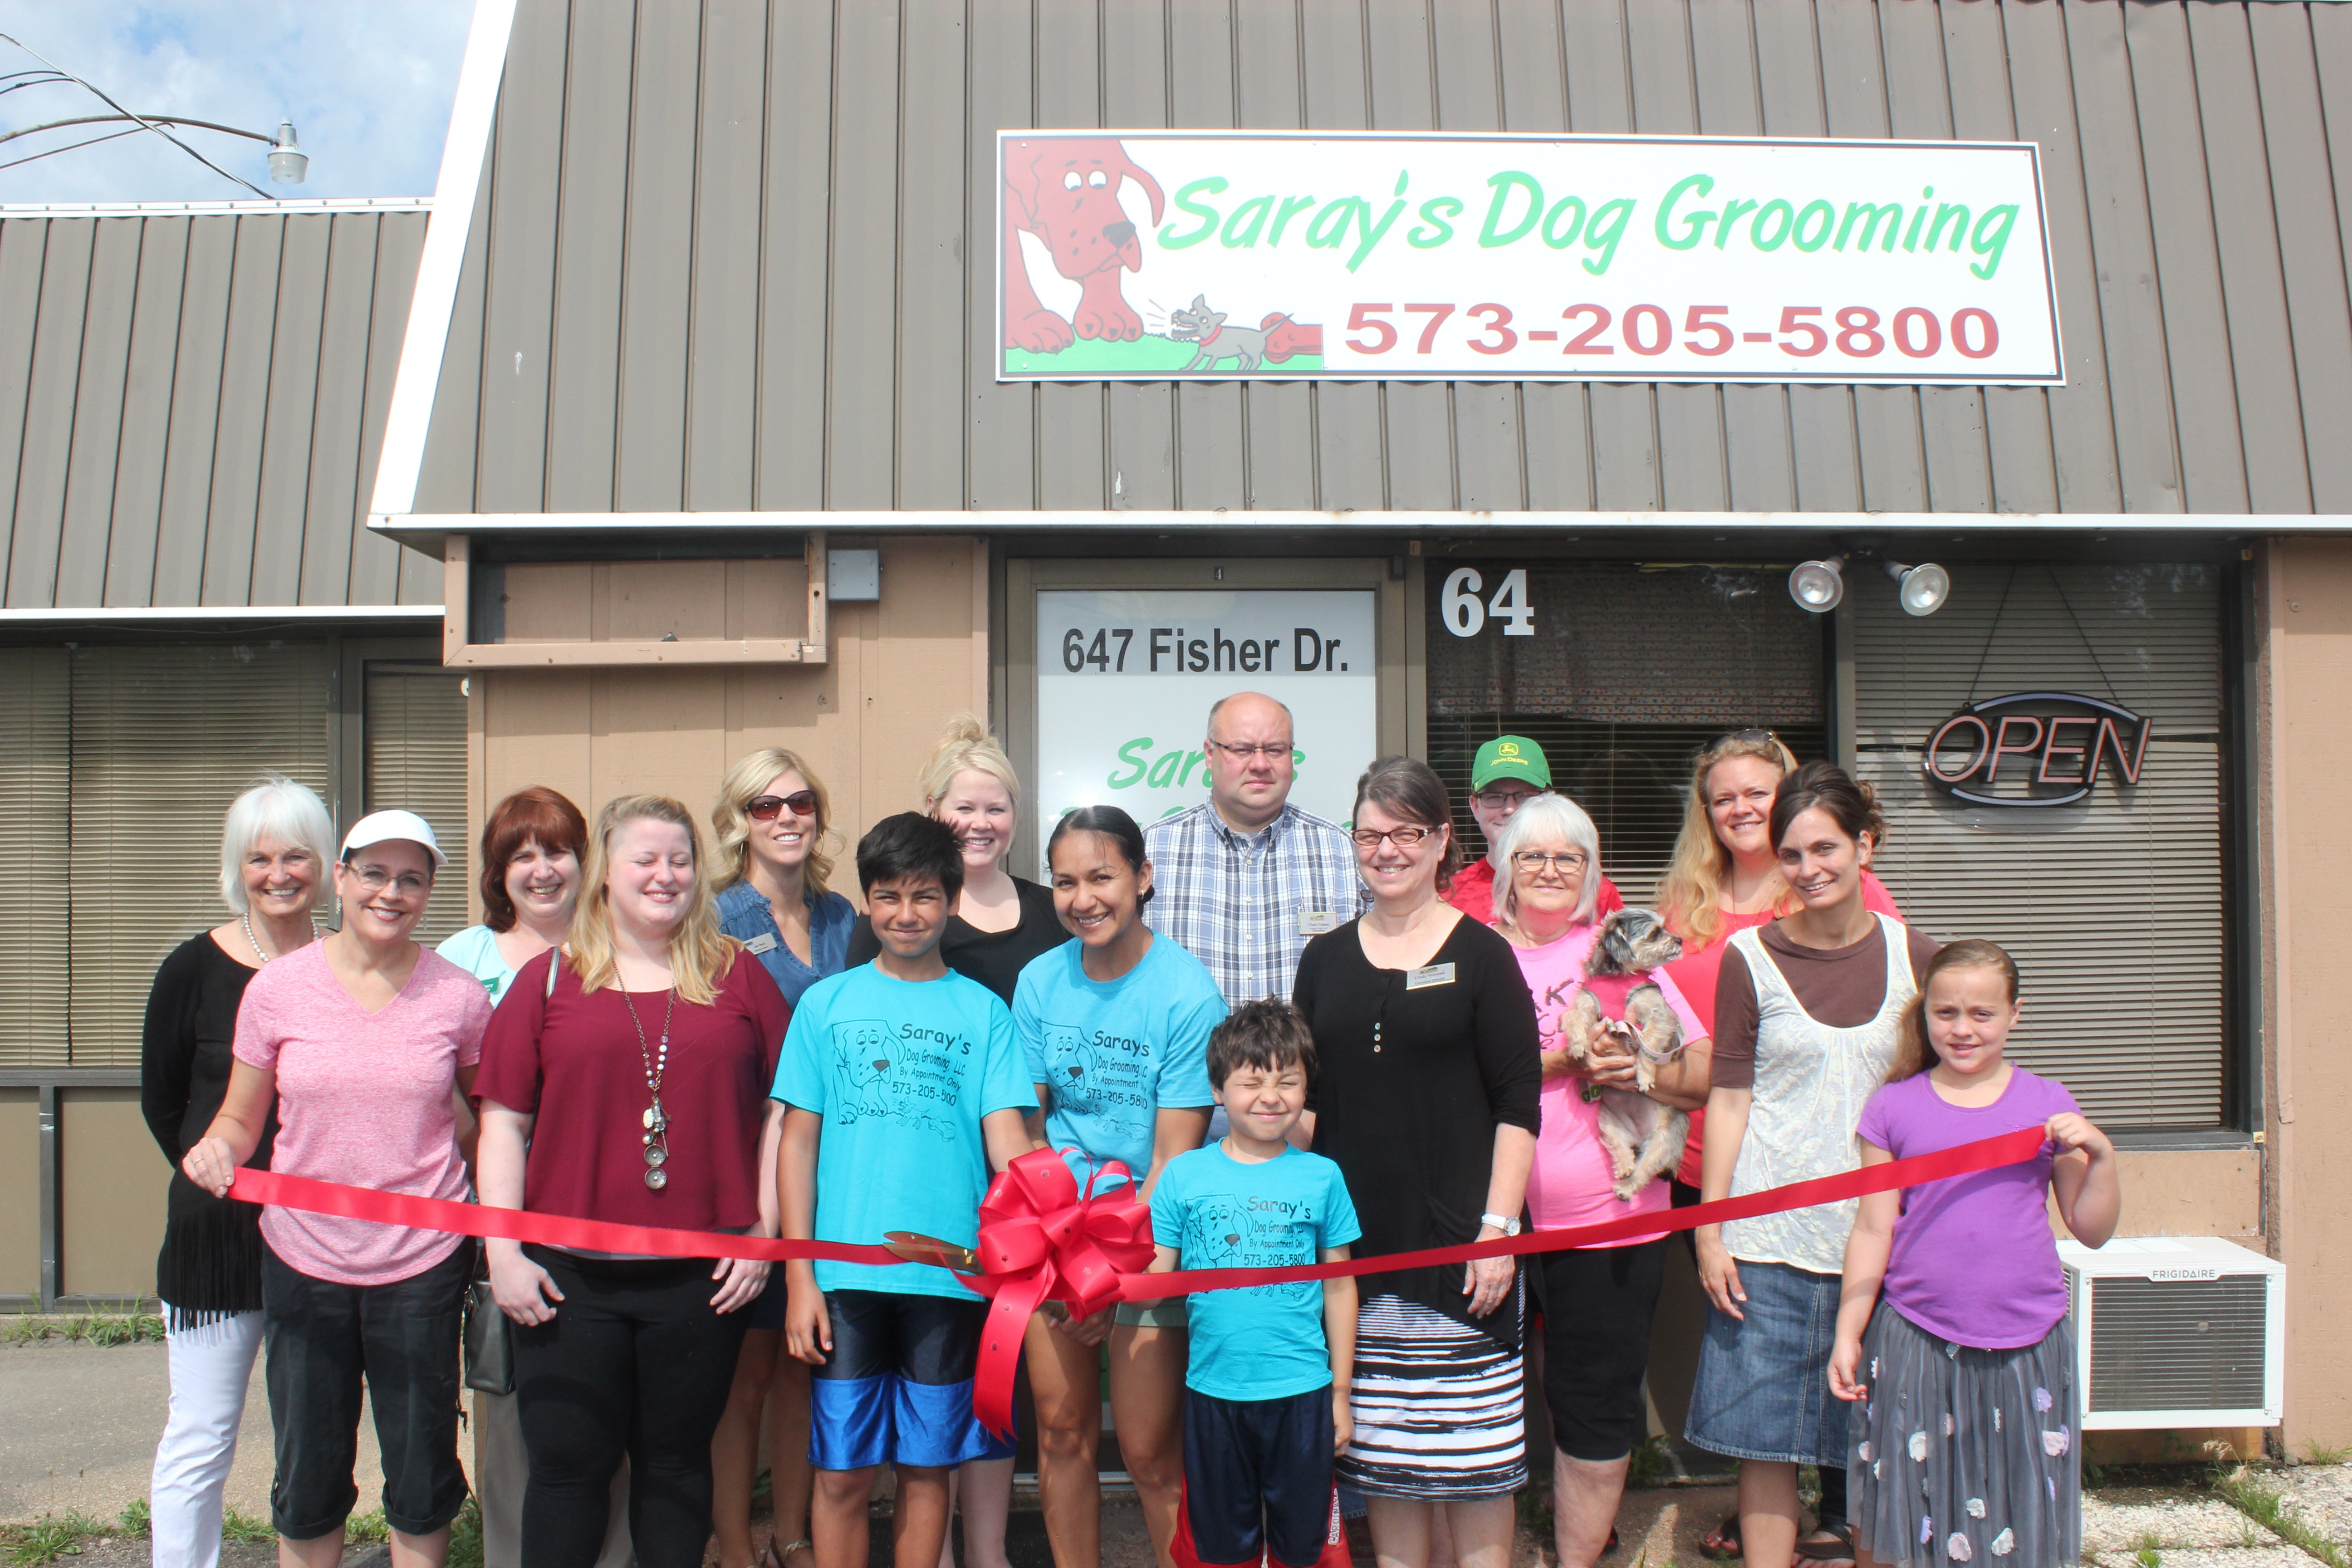 Saray's Dog Grooming ribbon cutting.jpg